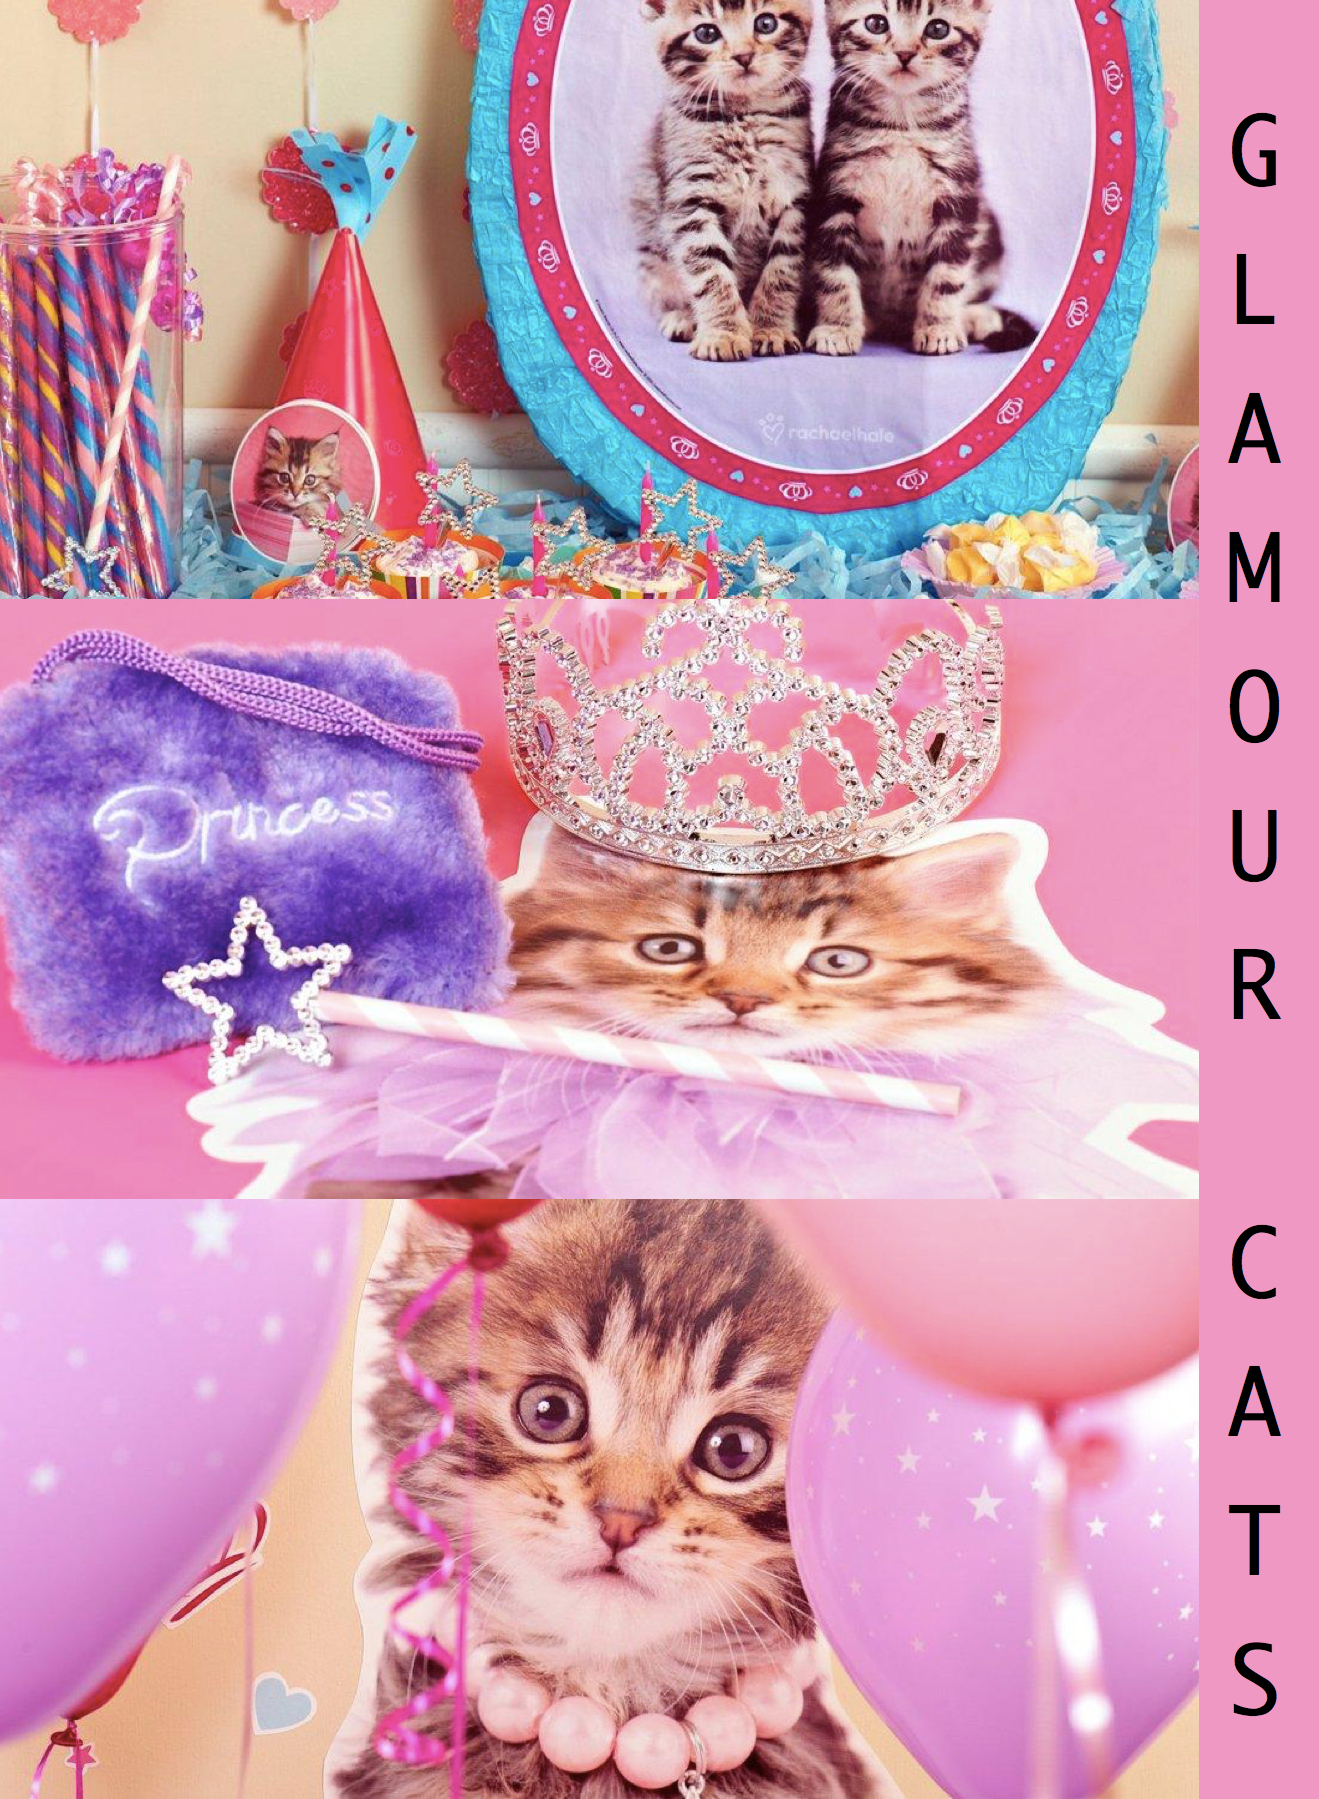 Glamour Cats Party Supplies, Celebrate Cat Cuteness